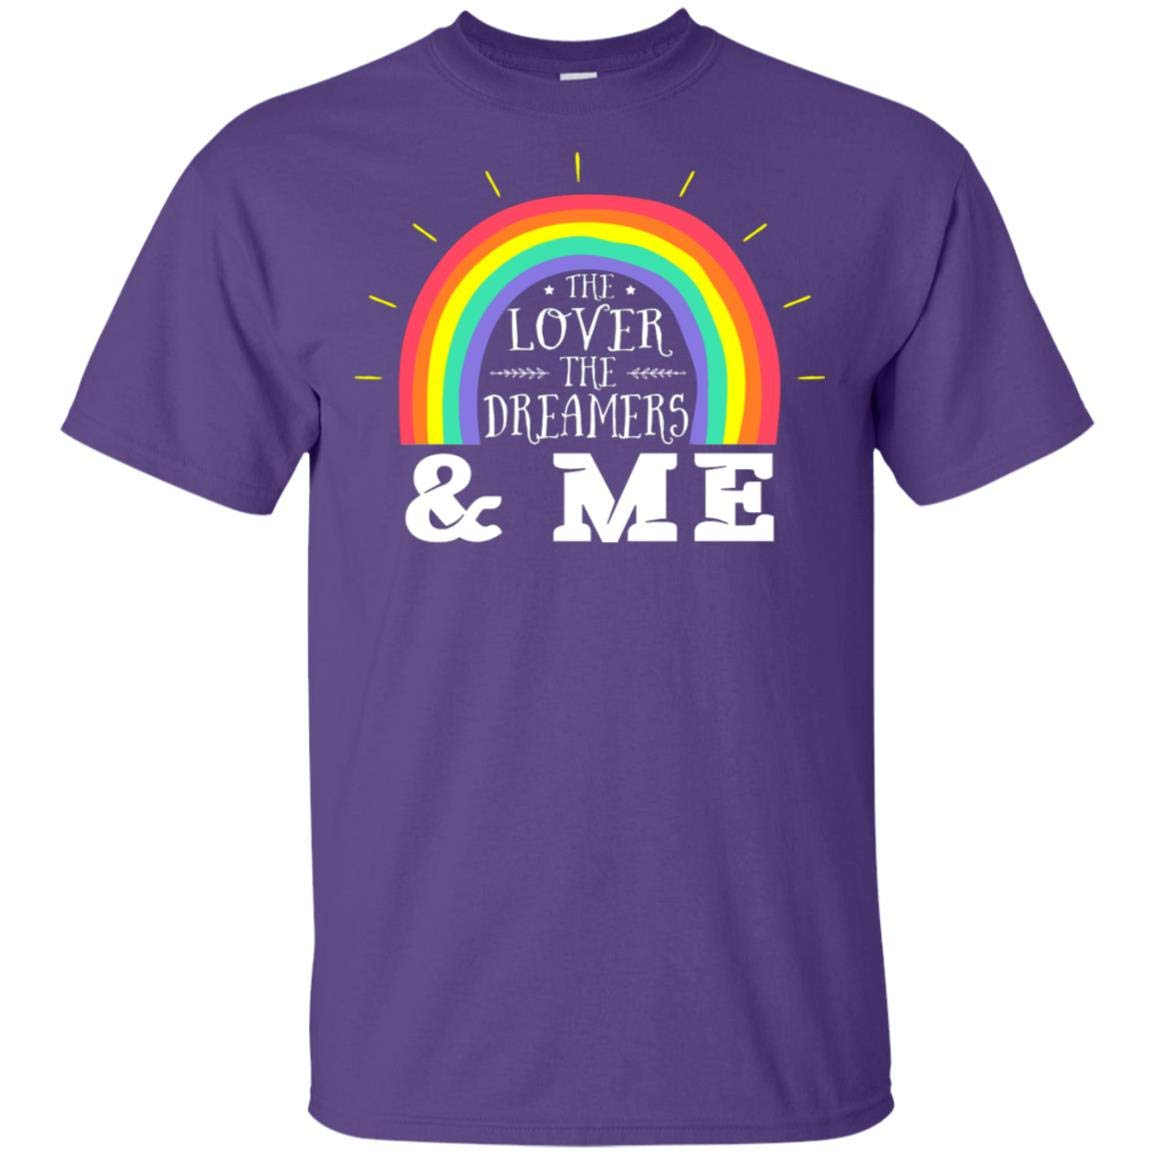 The Love R The Dreamers And Me Pride Lgbt T Shirt